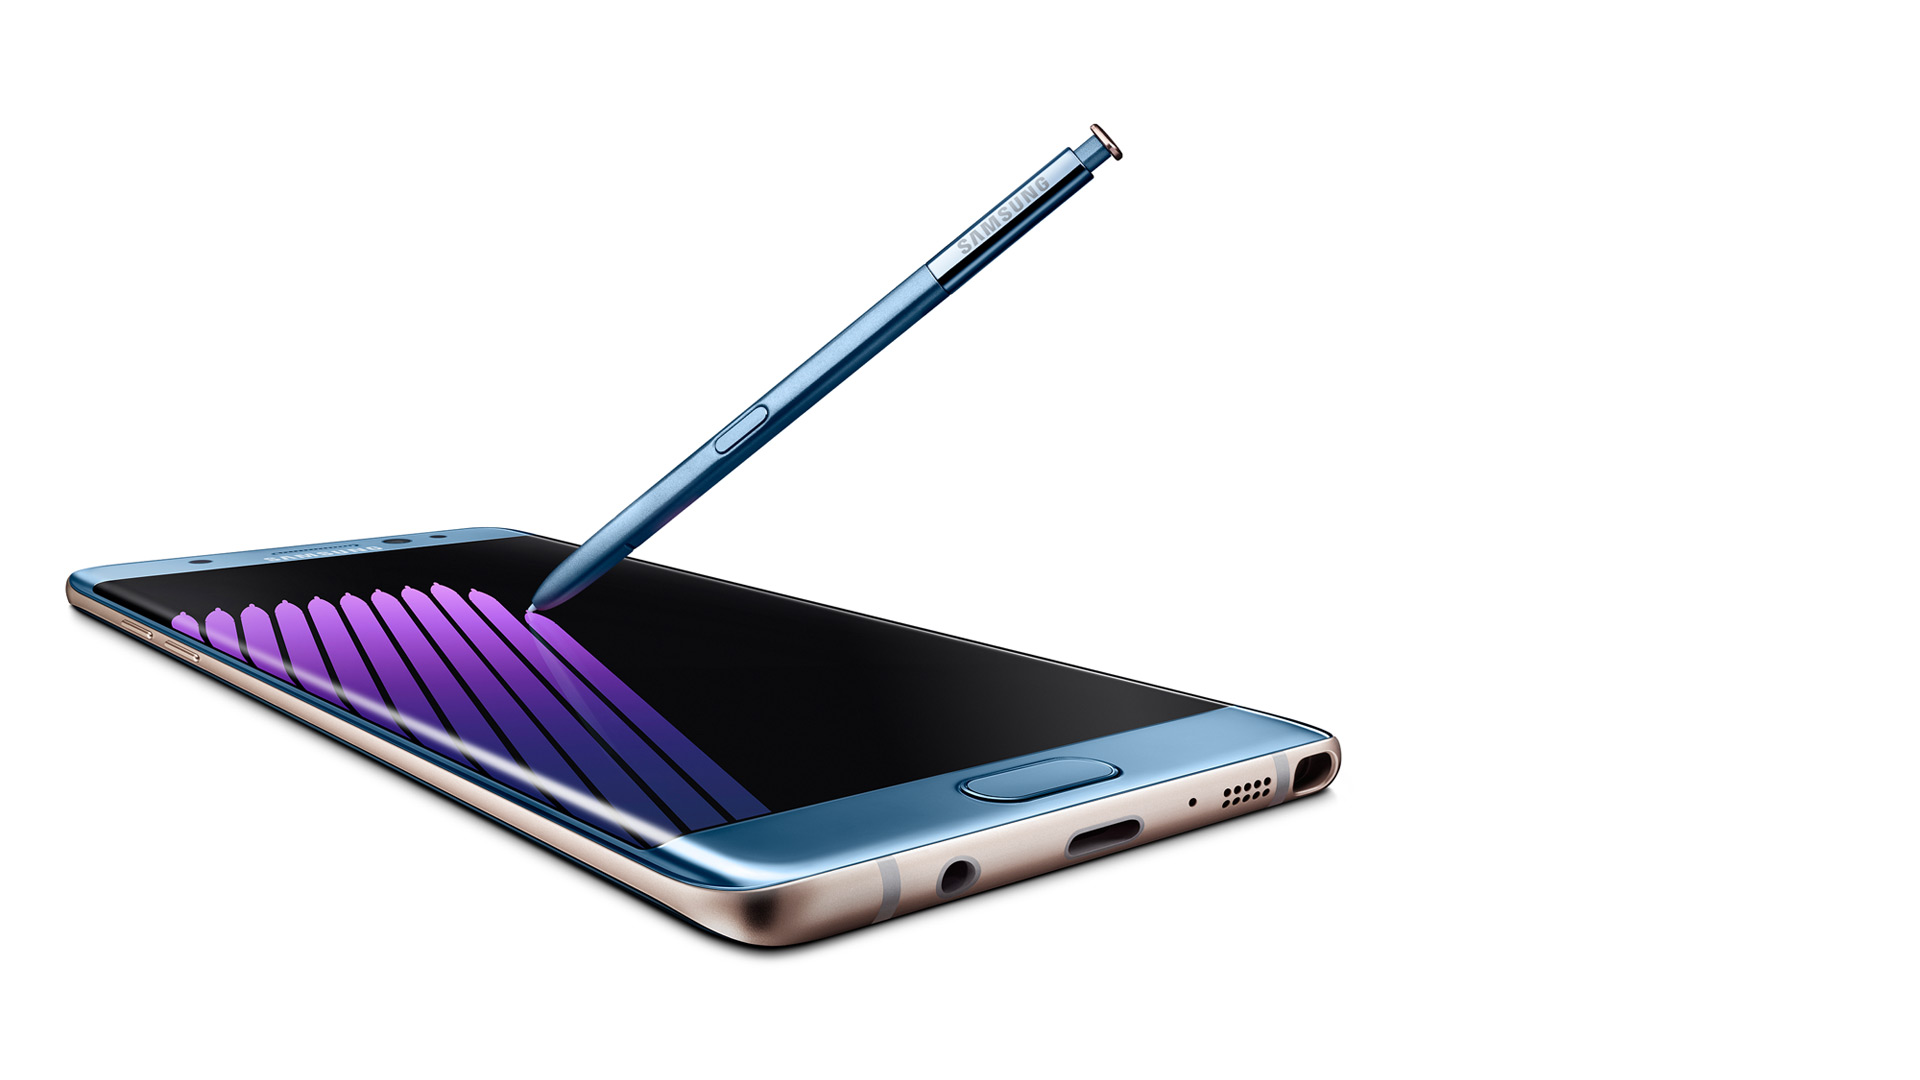 Samsung expects Galaxy Note 7 sales to beat earlier Note 5